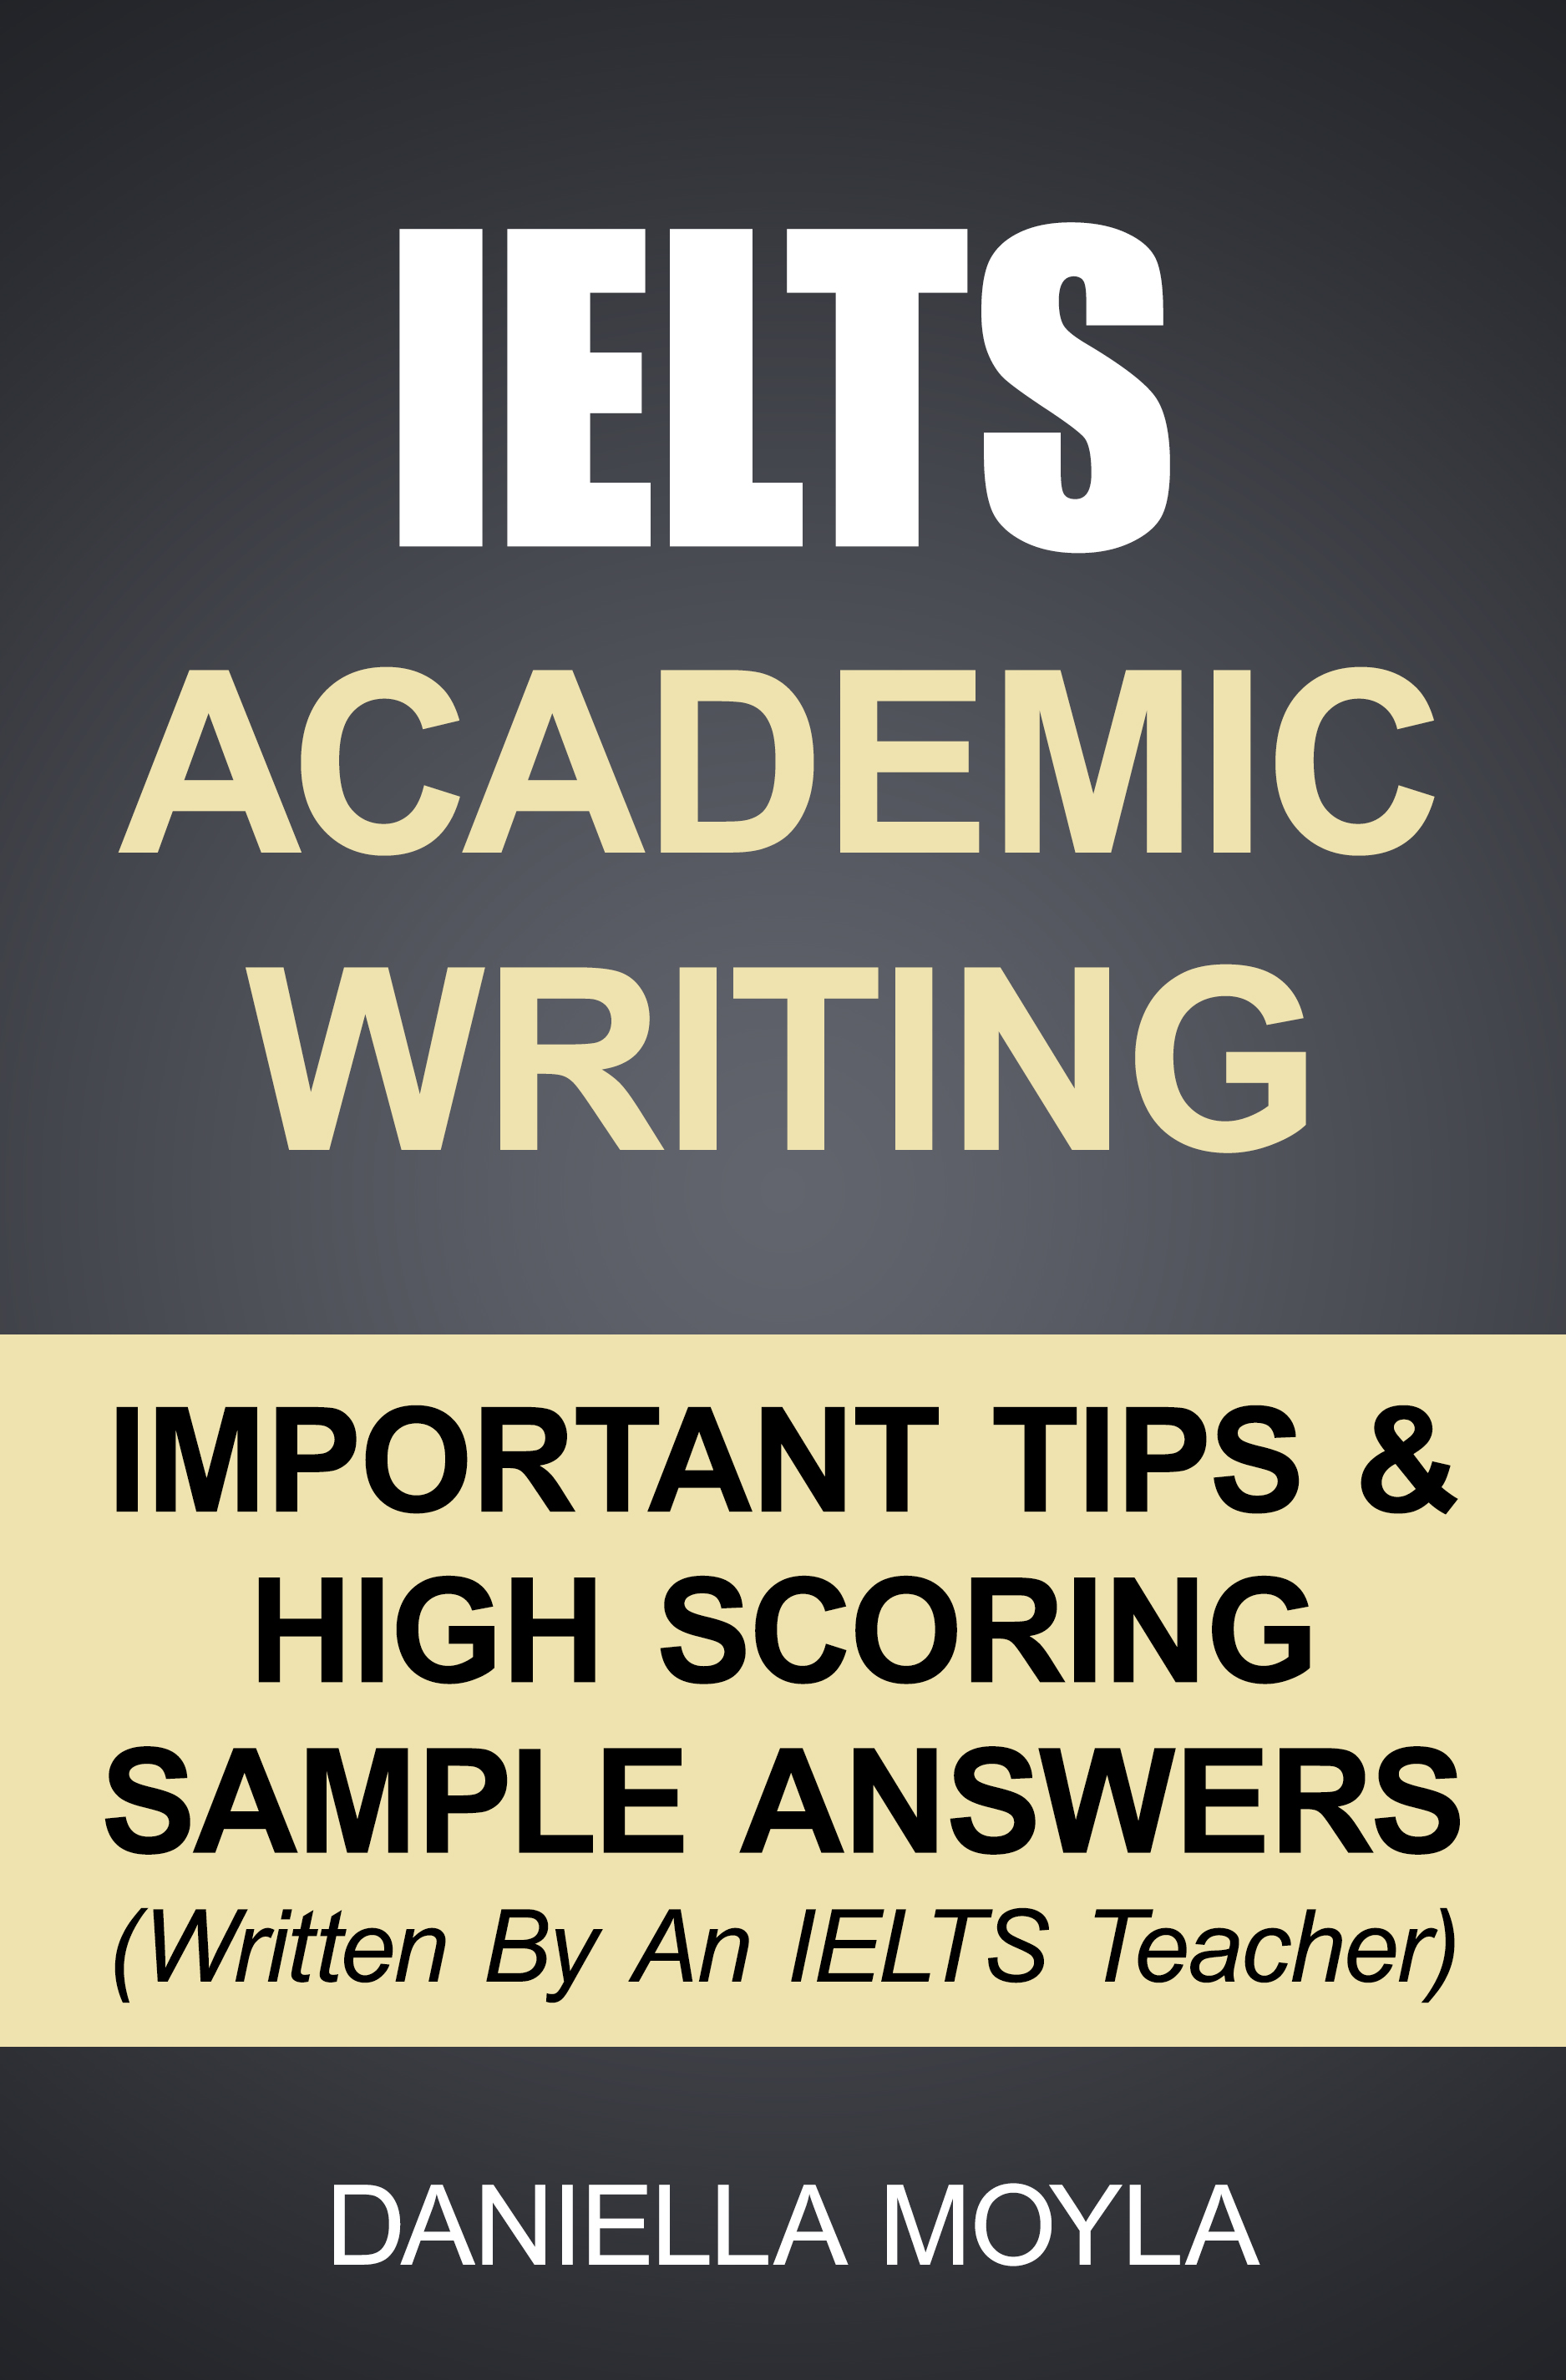 Ielts Academic Writing Important Tips High Scoring Sample Answers An Ebook By Daniella Moyla